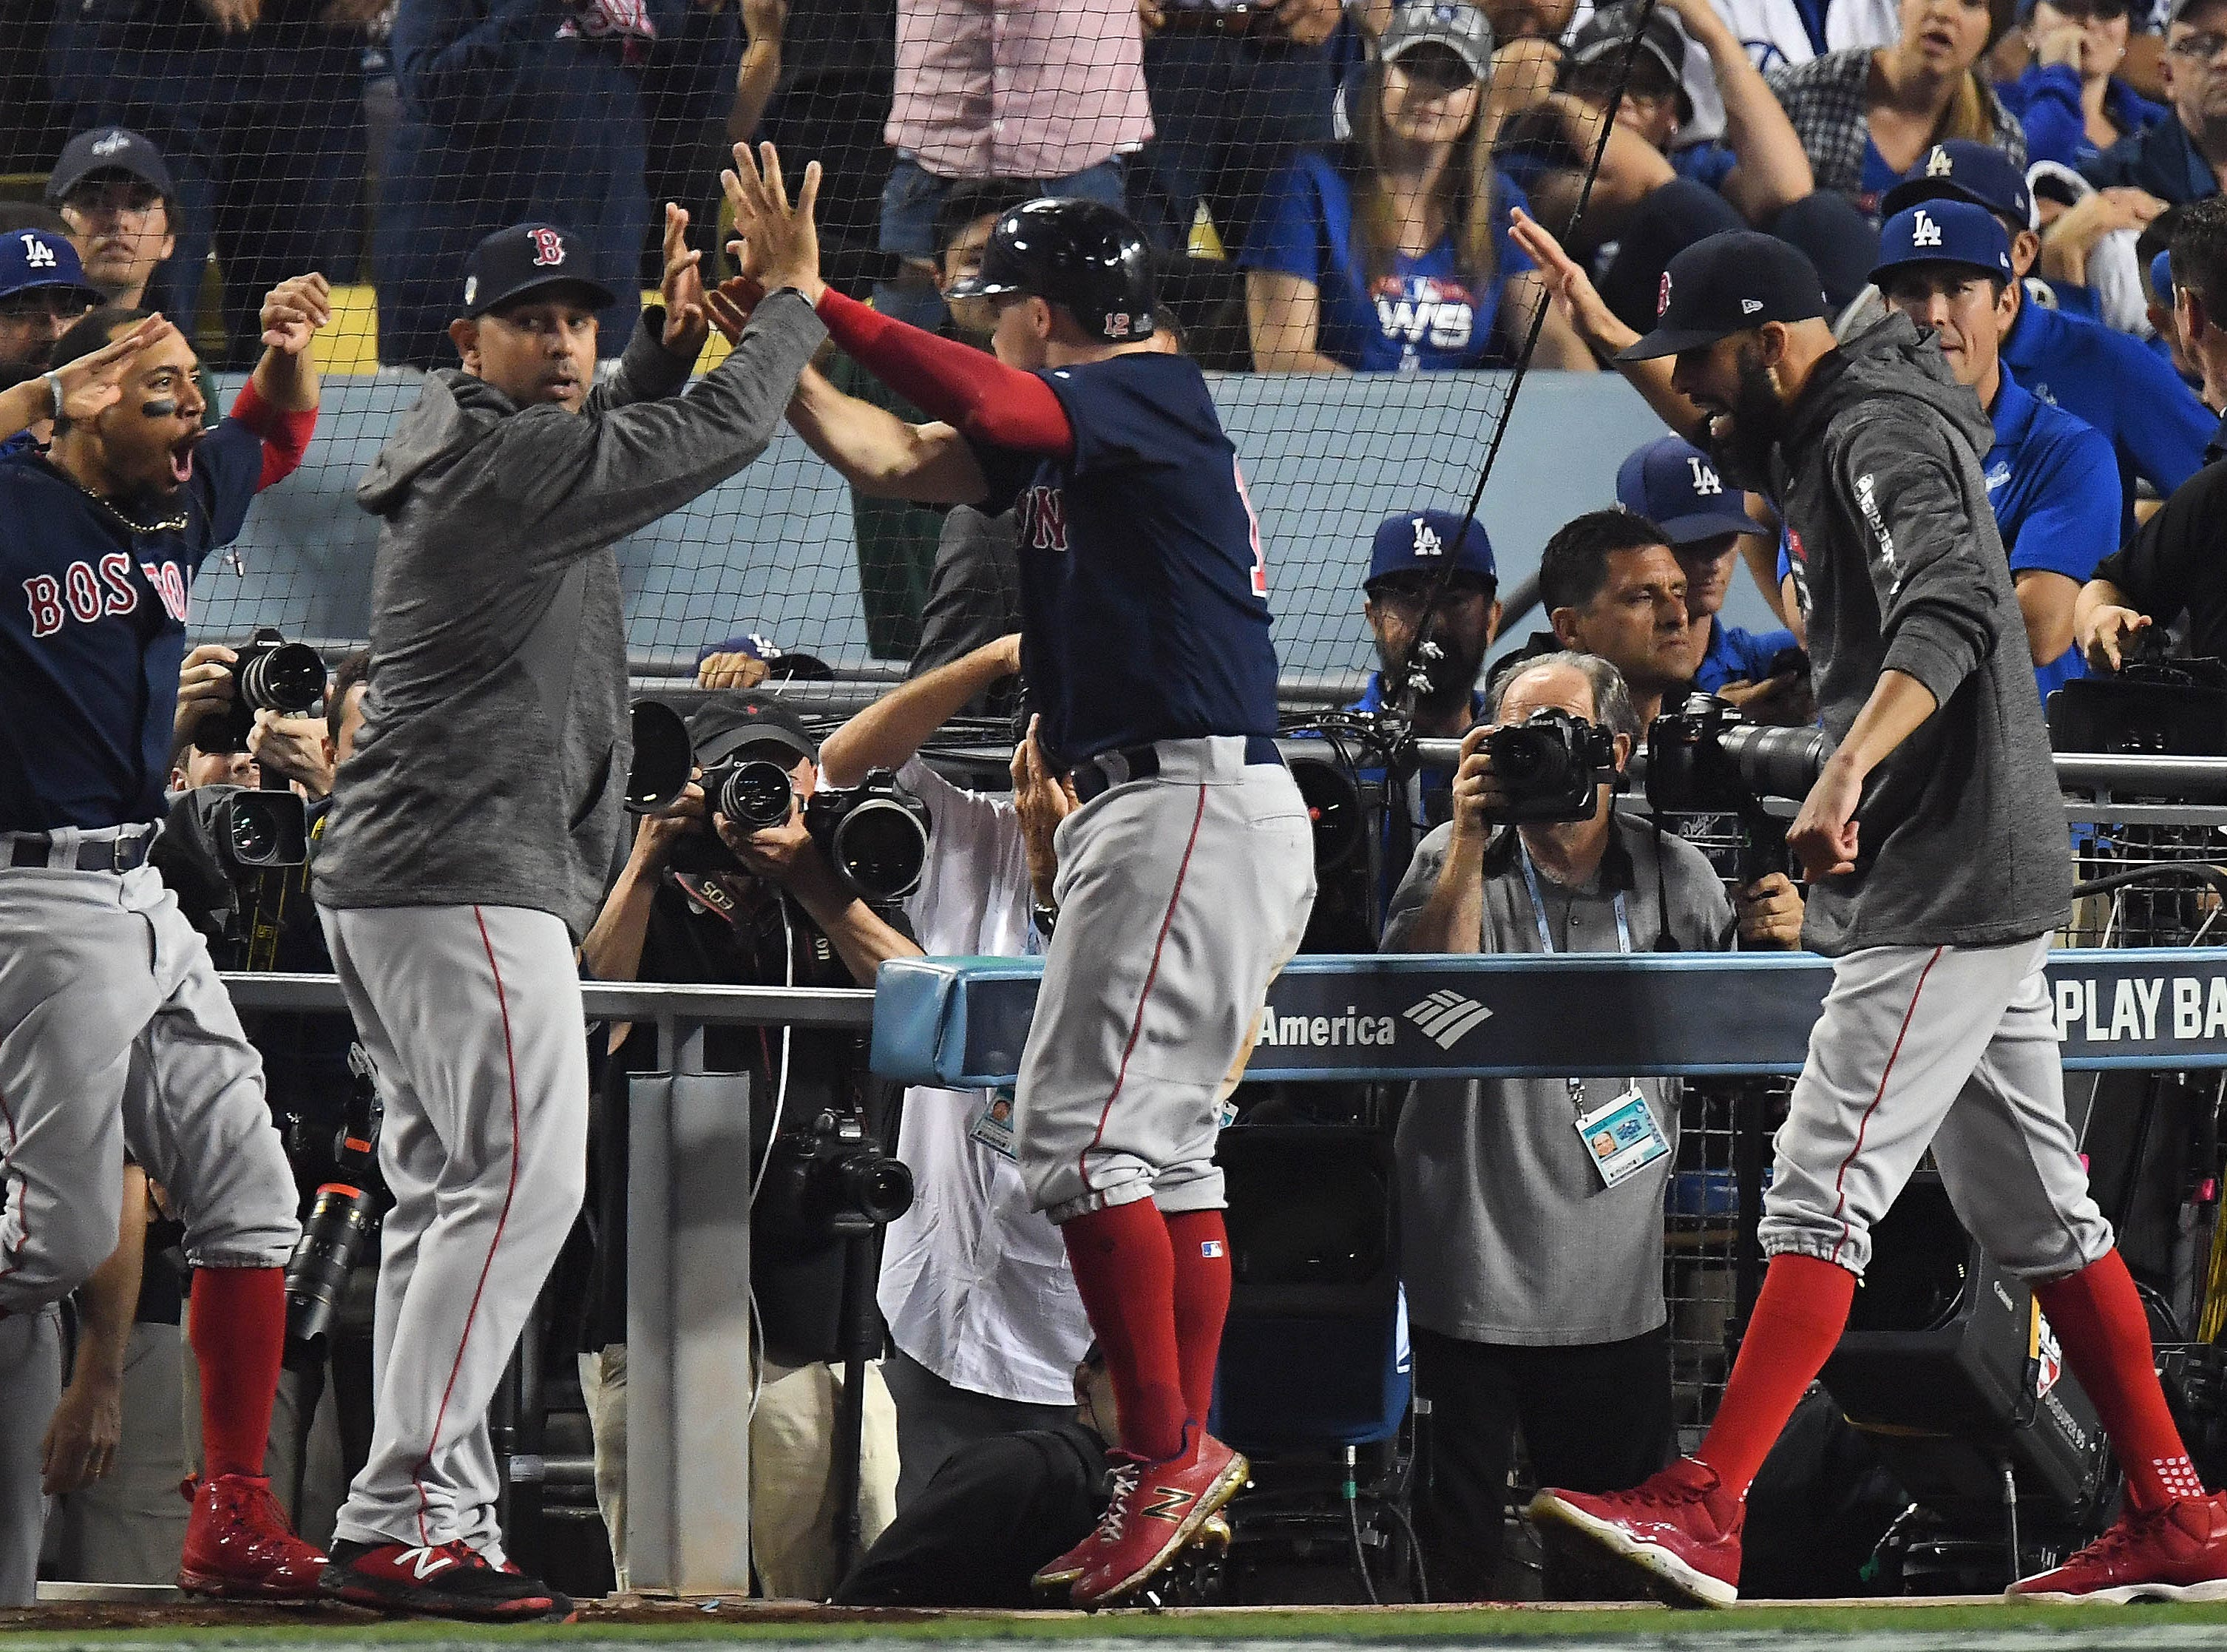 Game 3 at Dodger Stadium: The Red Sox celebrate after scoring the go-ahead run in the 13th inning.